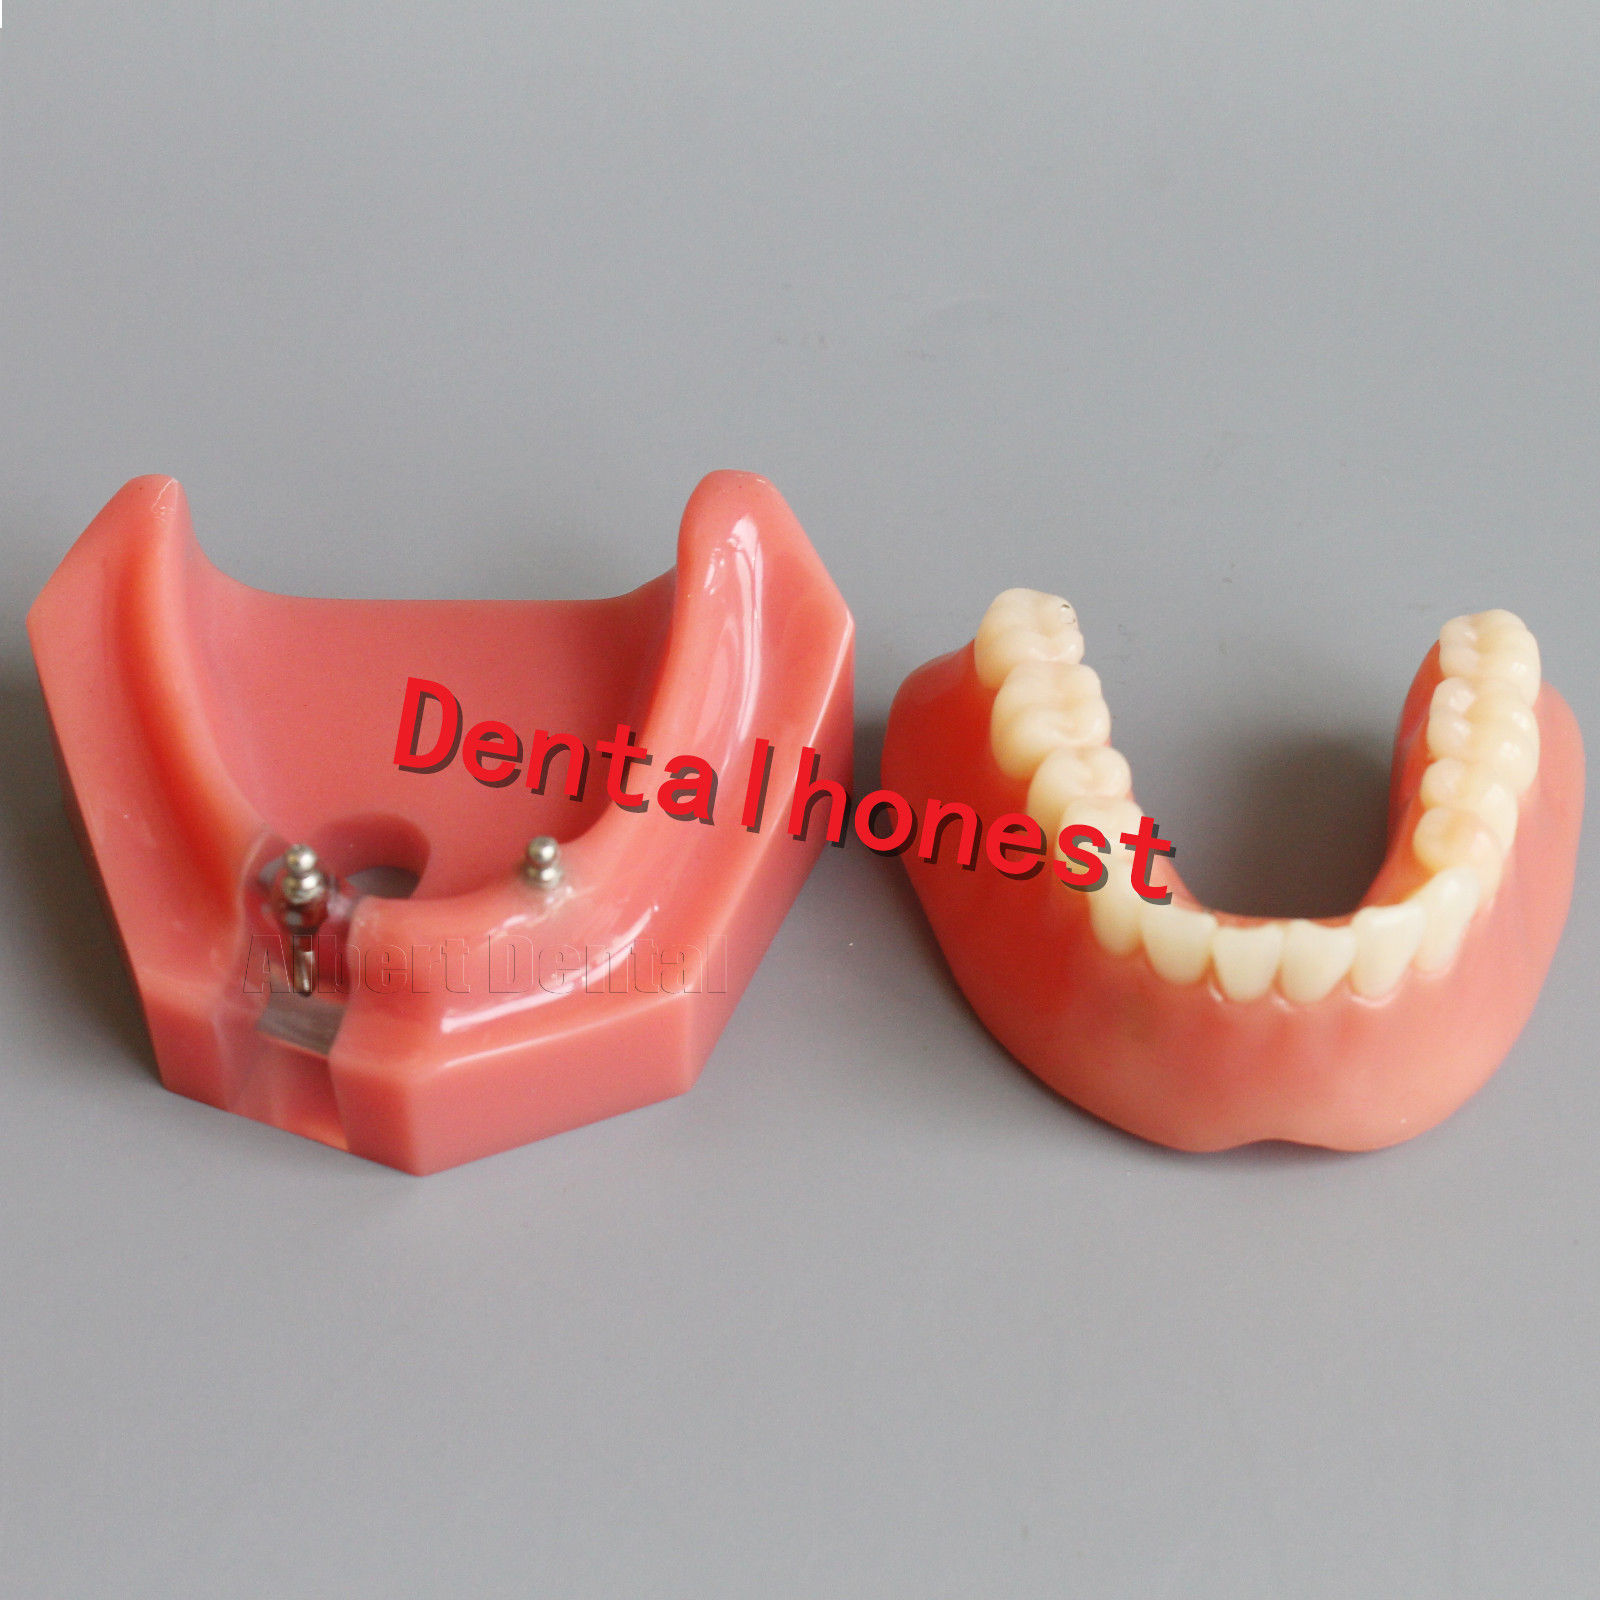 Dental Inferior Implant Overdenture 6007 Teeth Model 2 Implants Tooth Model soarday dental restoration model with 4 implants overdenture inferior teaching study teeth model